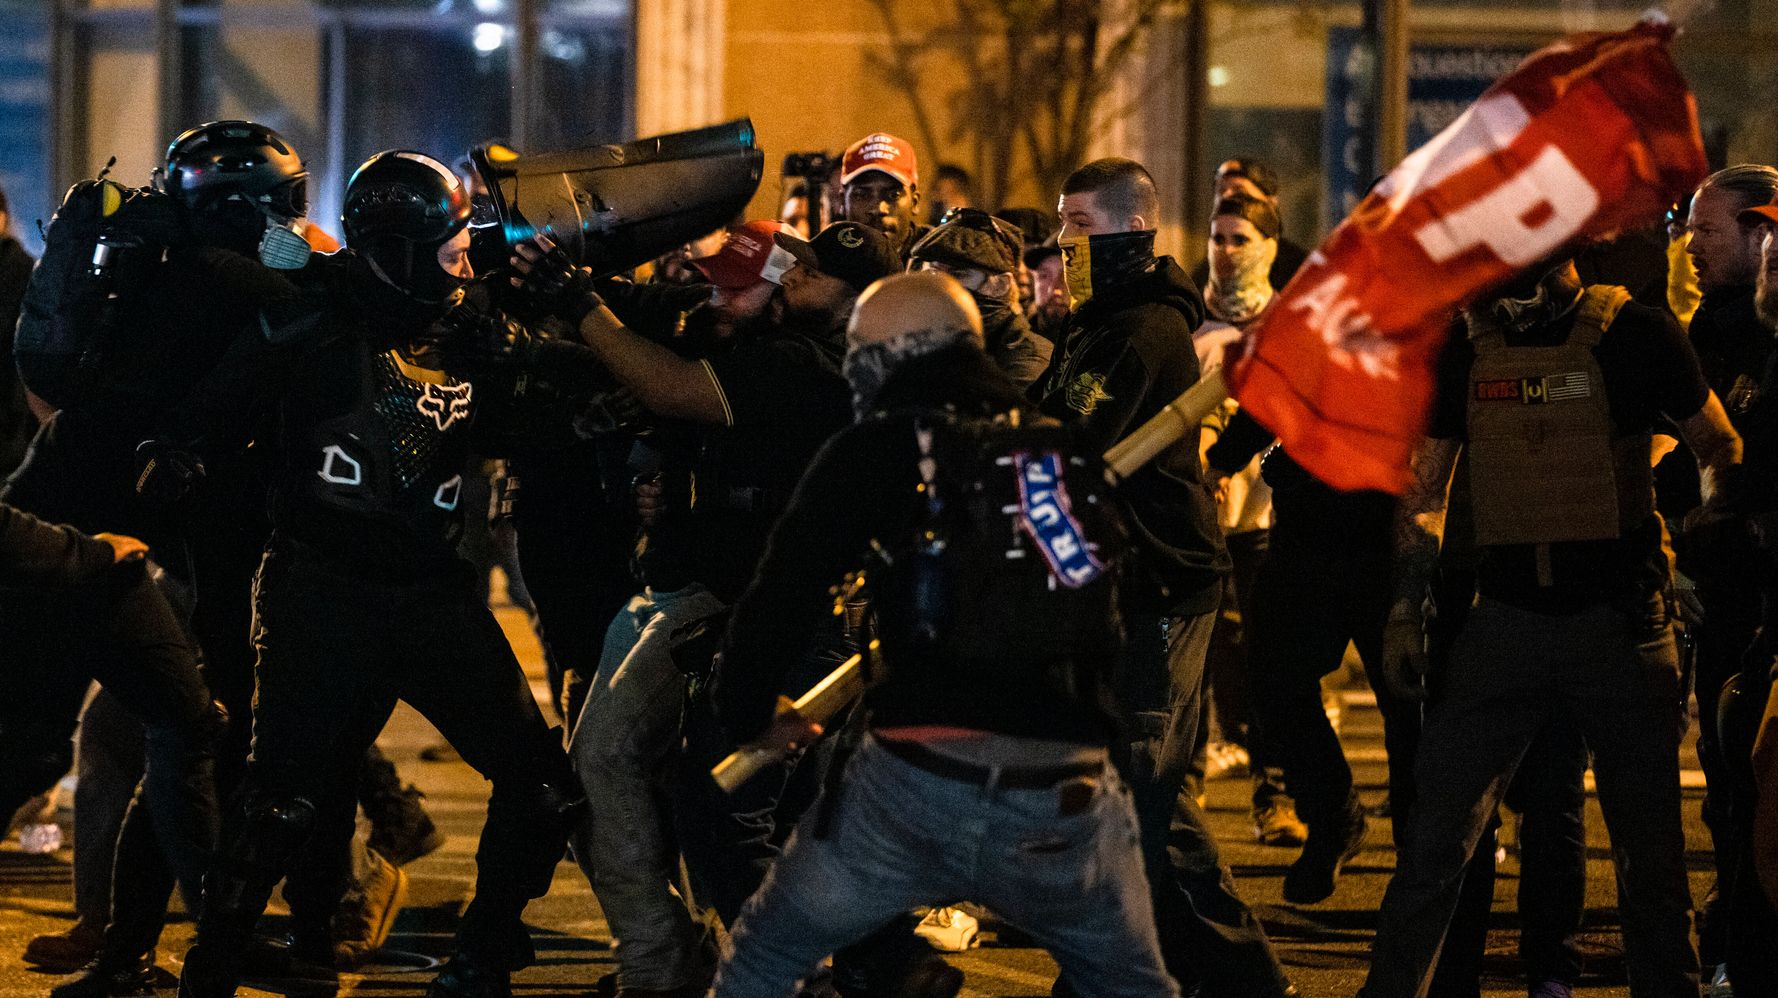 As D.C. Clashes Erupt, Trump Sics Police On 'Antifa Scum' In Stunningly Vicious Tweet